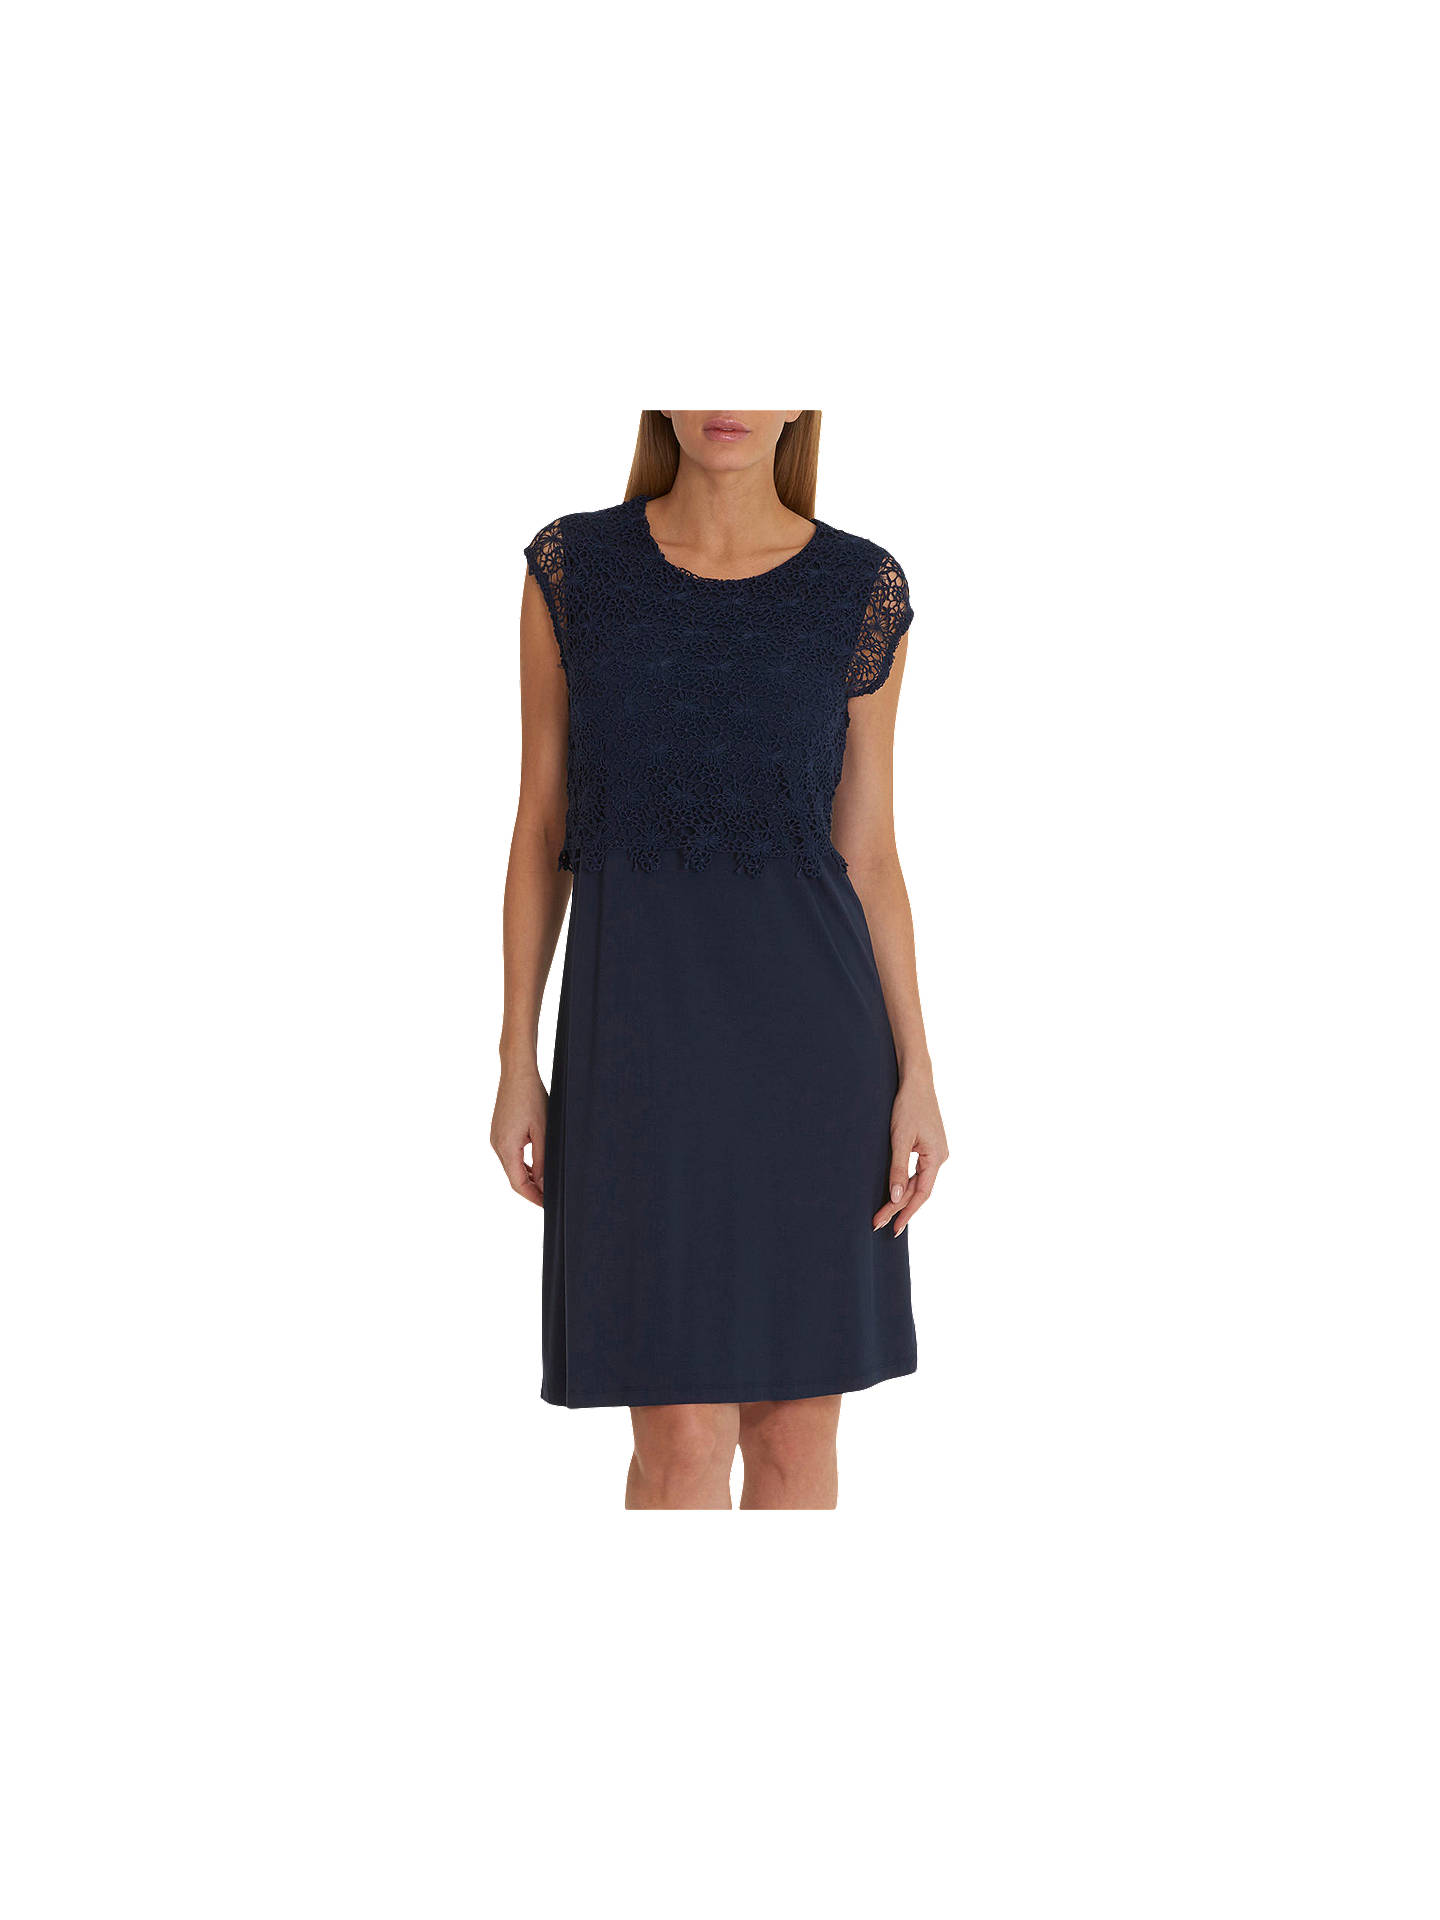 BuyBetty Barclay Lace Top Dress, Peacoat Blue, 14 Online at johnlewis.com